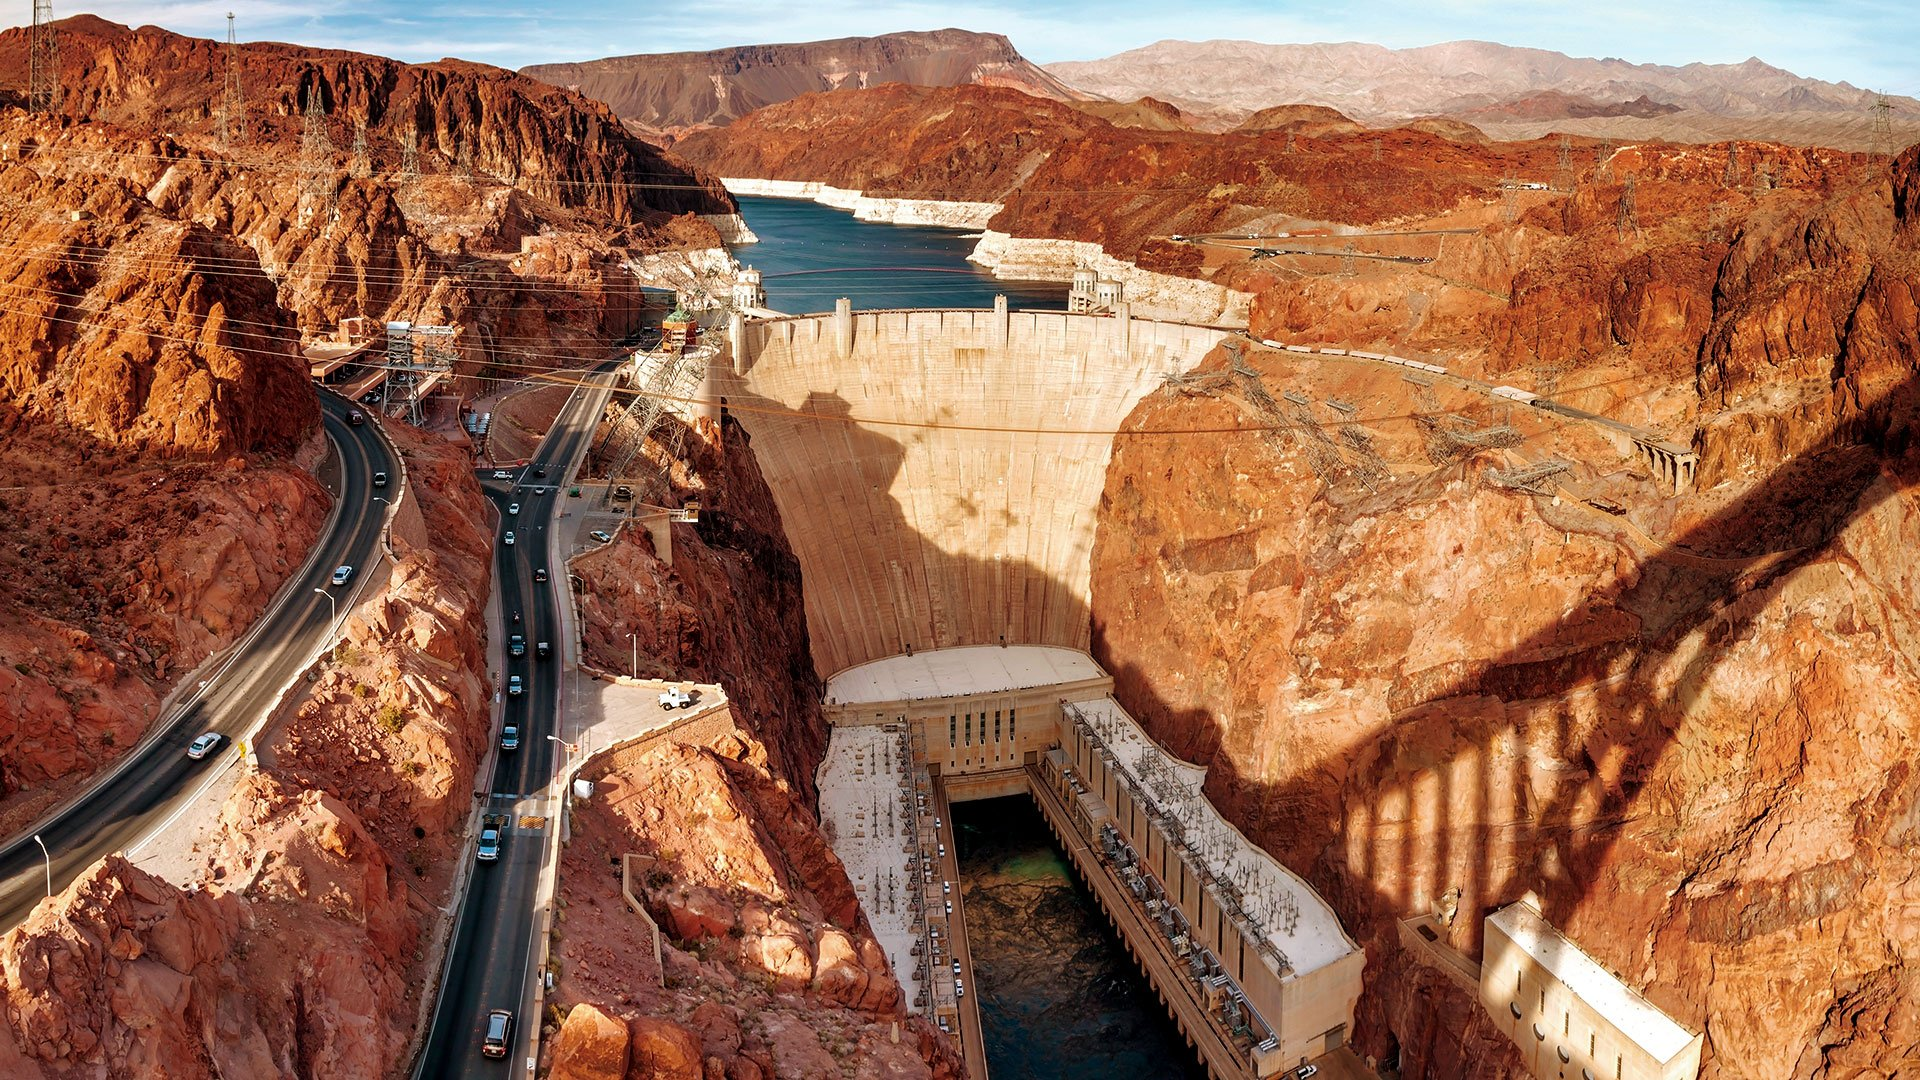 View of the Hoover Dam from the The Mike O'Callaghan–Pat Tillman Memorial Bridge